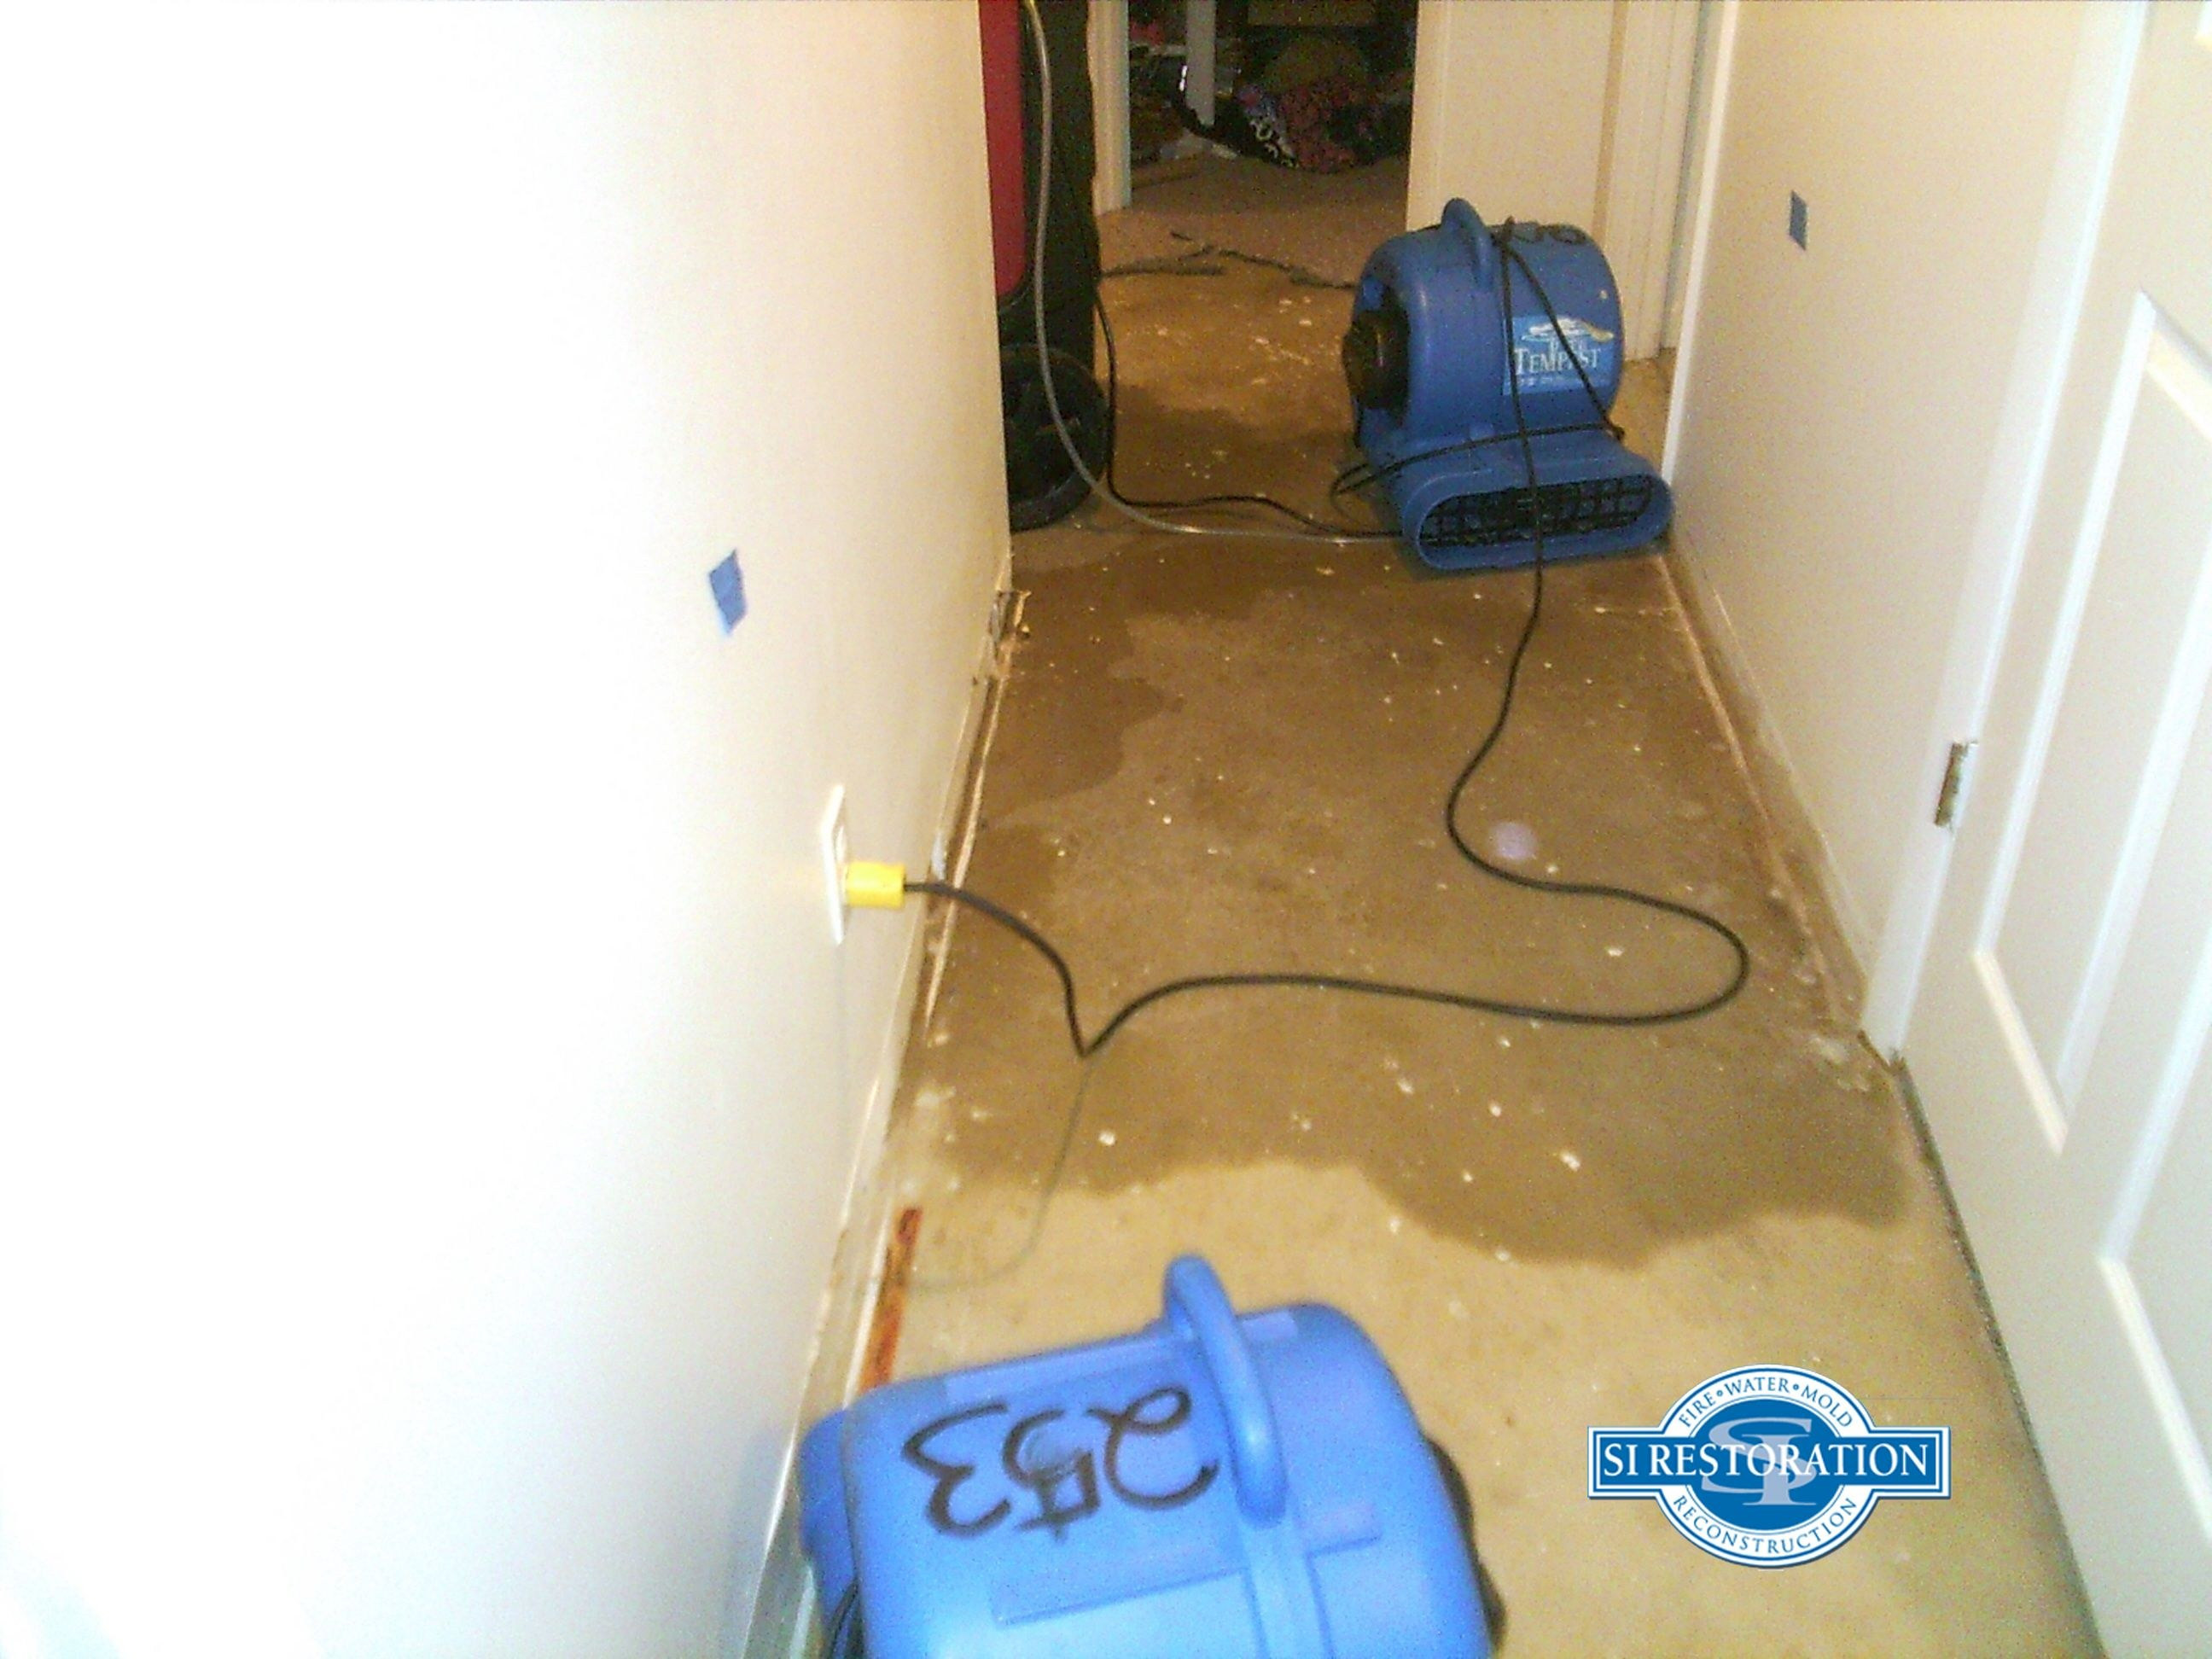 hardwood flooring riverside ca of how to clean mold off car carpet best of corvette carpet replacement intended for mold removal riverside ca